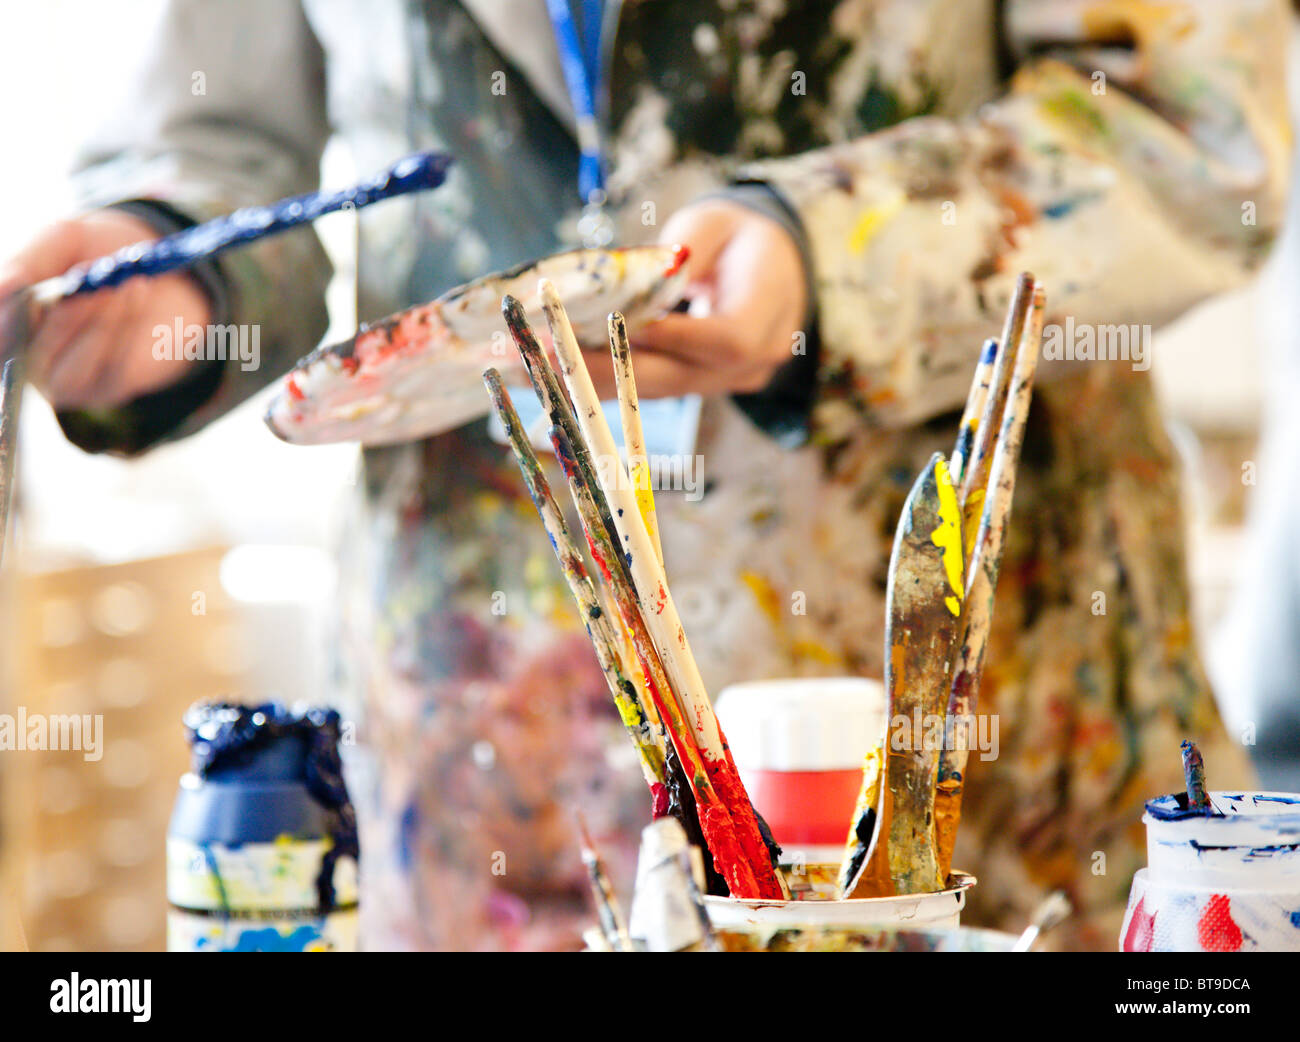 Paint brushes and artist in a paint spattered white coat, differential focus - Stock Image